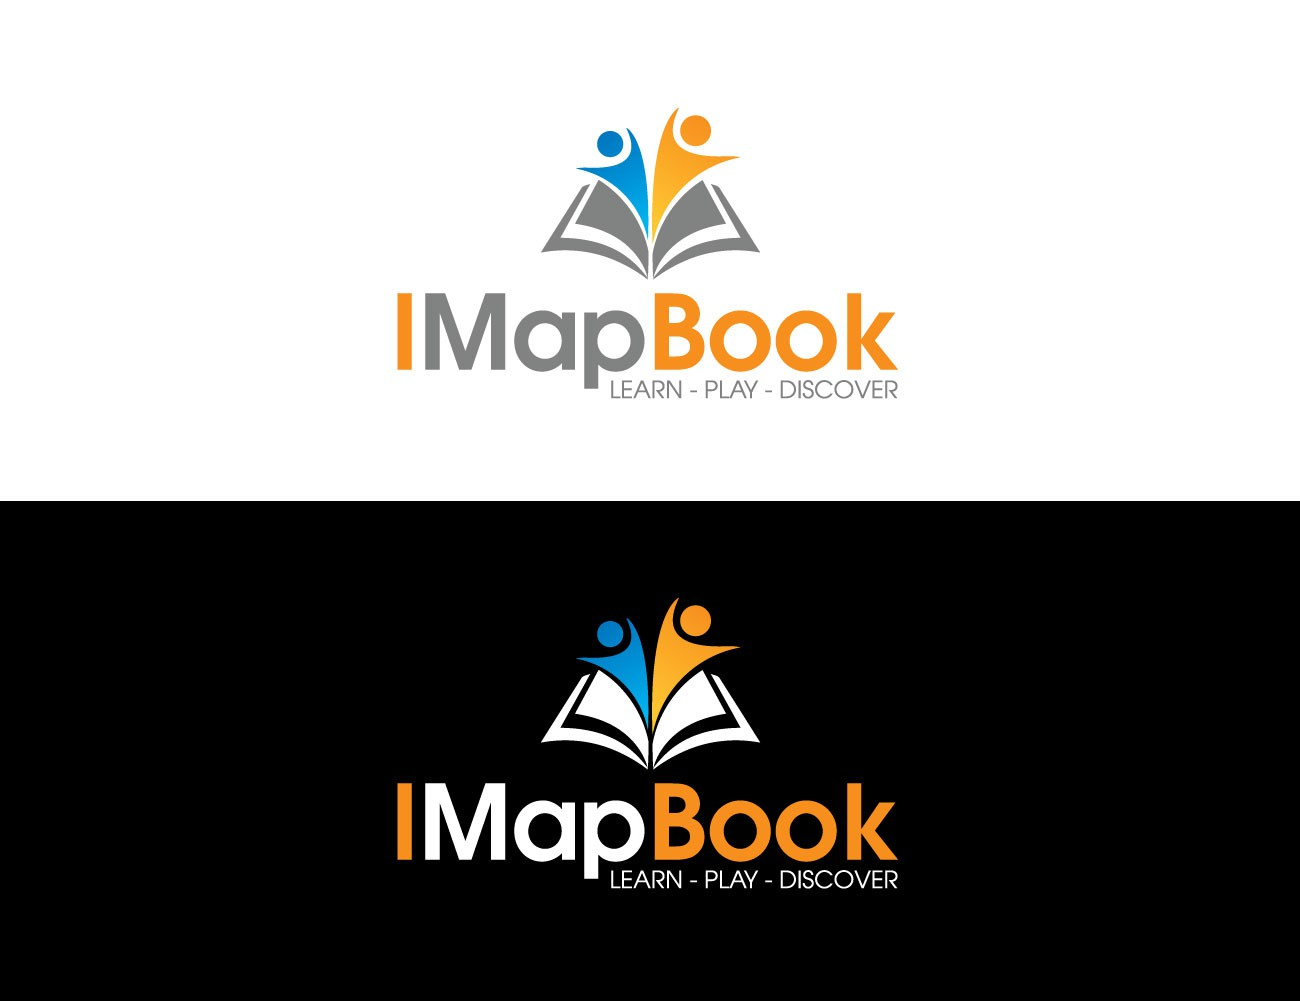 New logo wanted for iMapBook